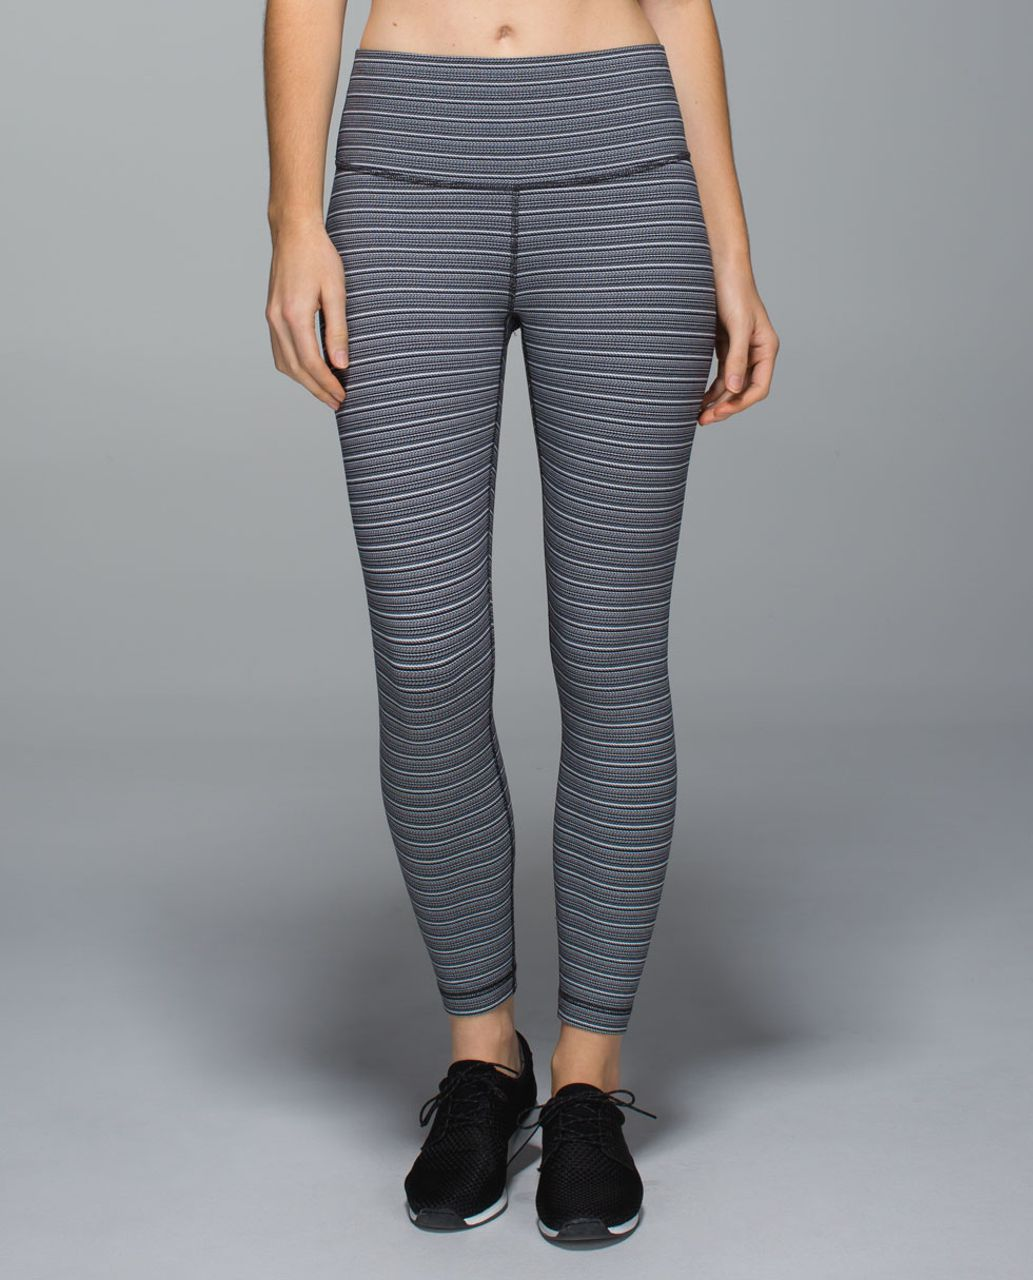 Lululemon High Times Pant - Textured Stripe Black Deep Coal